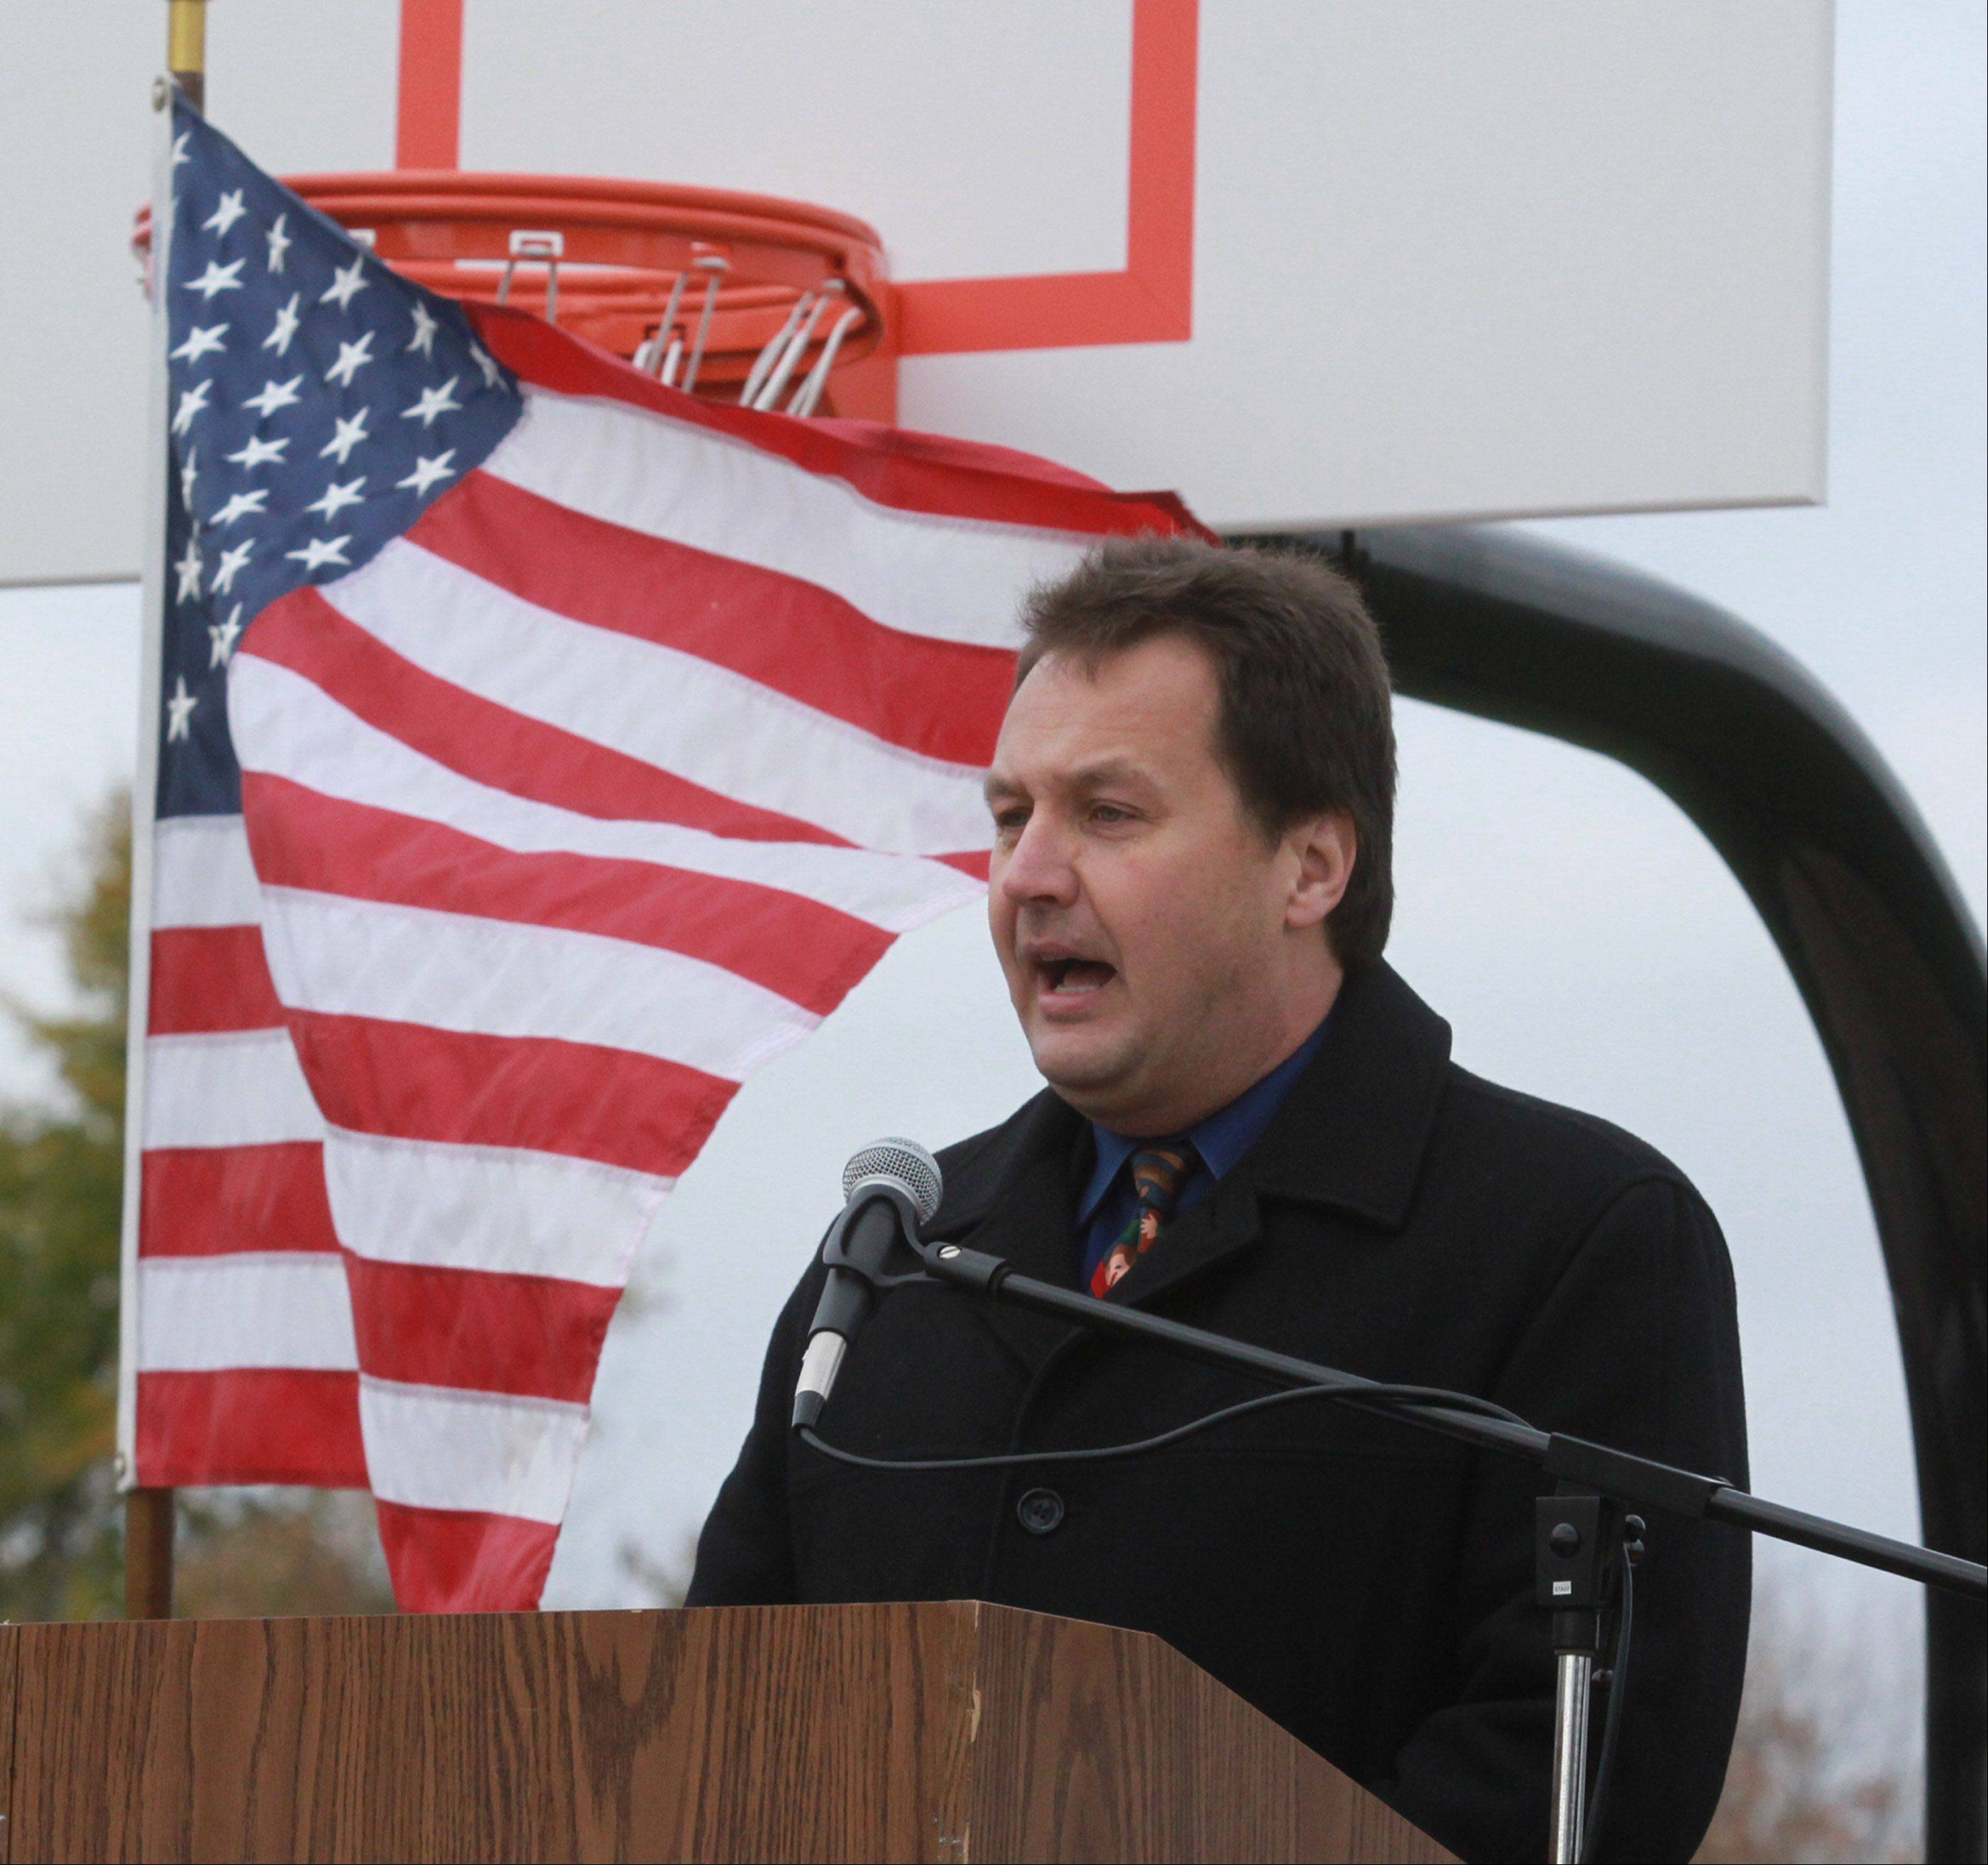 Quest Academy's Head of School Benjamin Hebebrand speaks during the school's ribbon-cutting ceremony for its 3.68-acre outdoor West Campus in Palatine on Thursday.